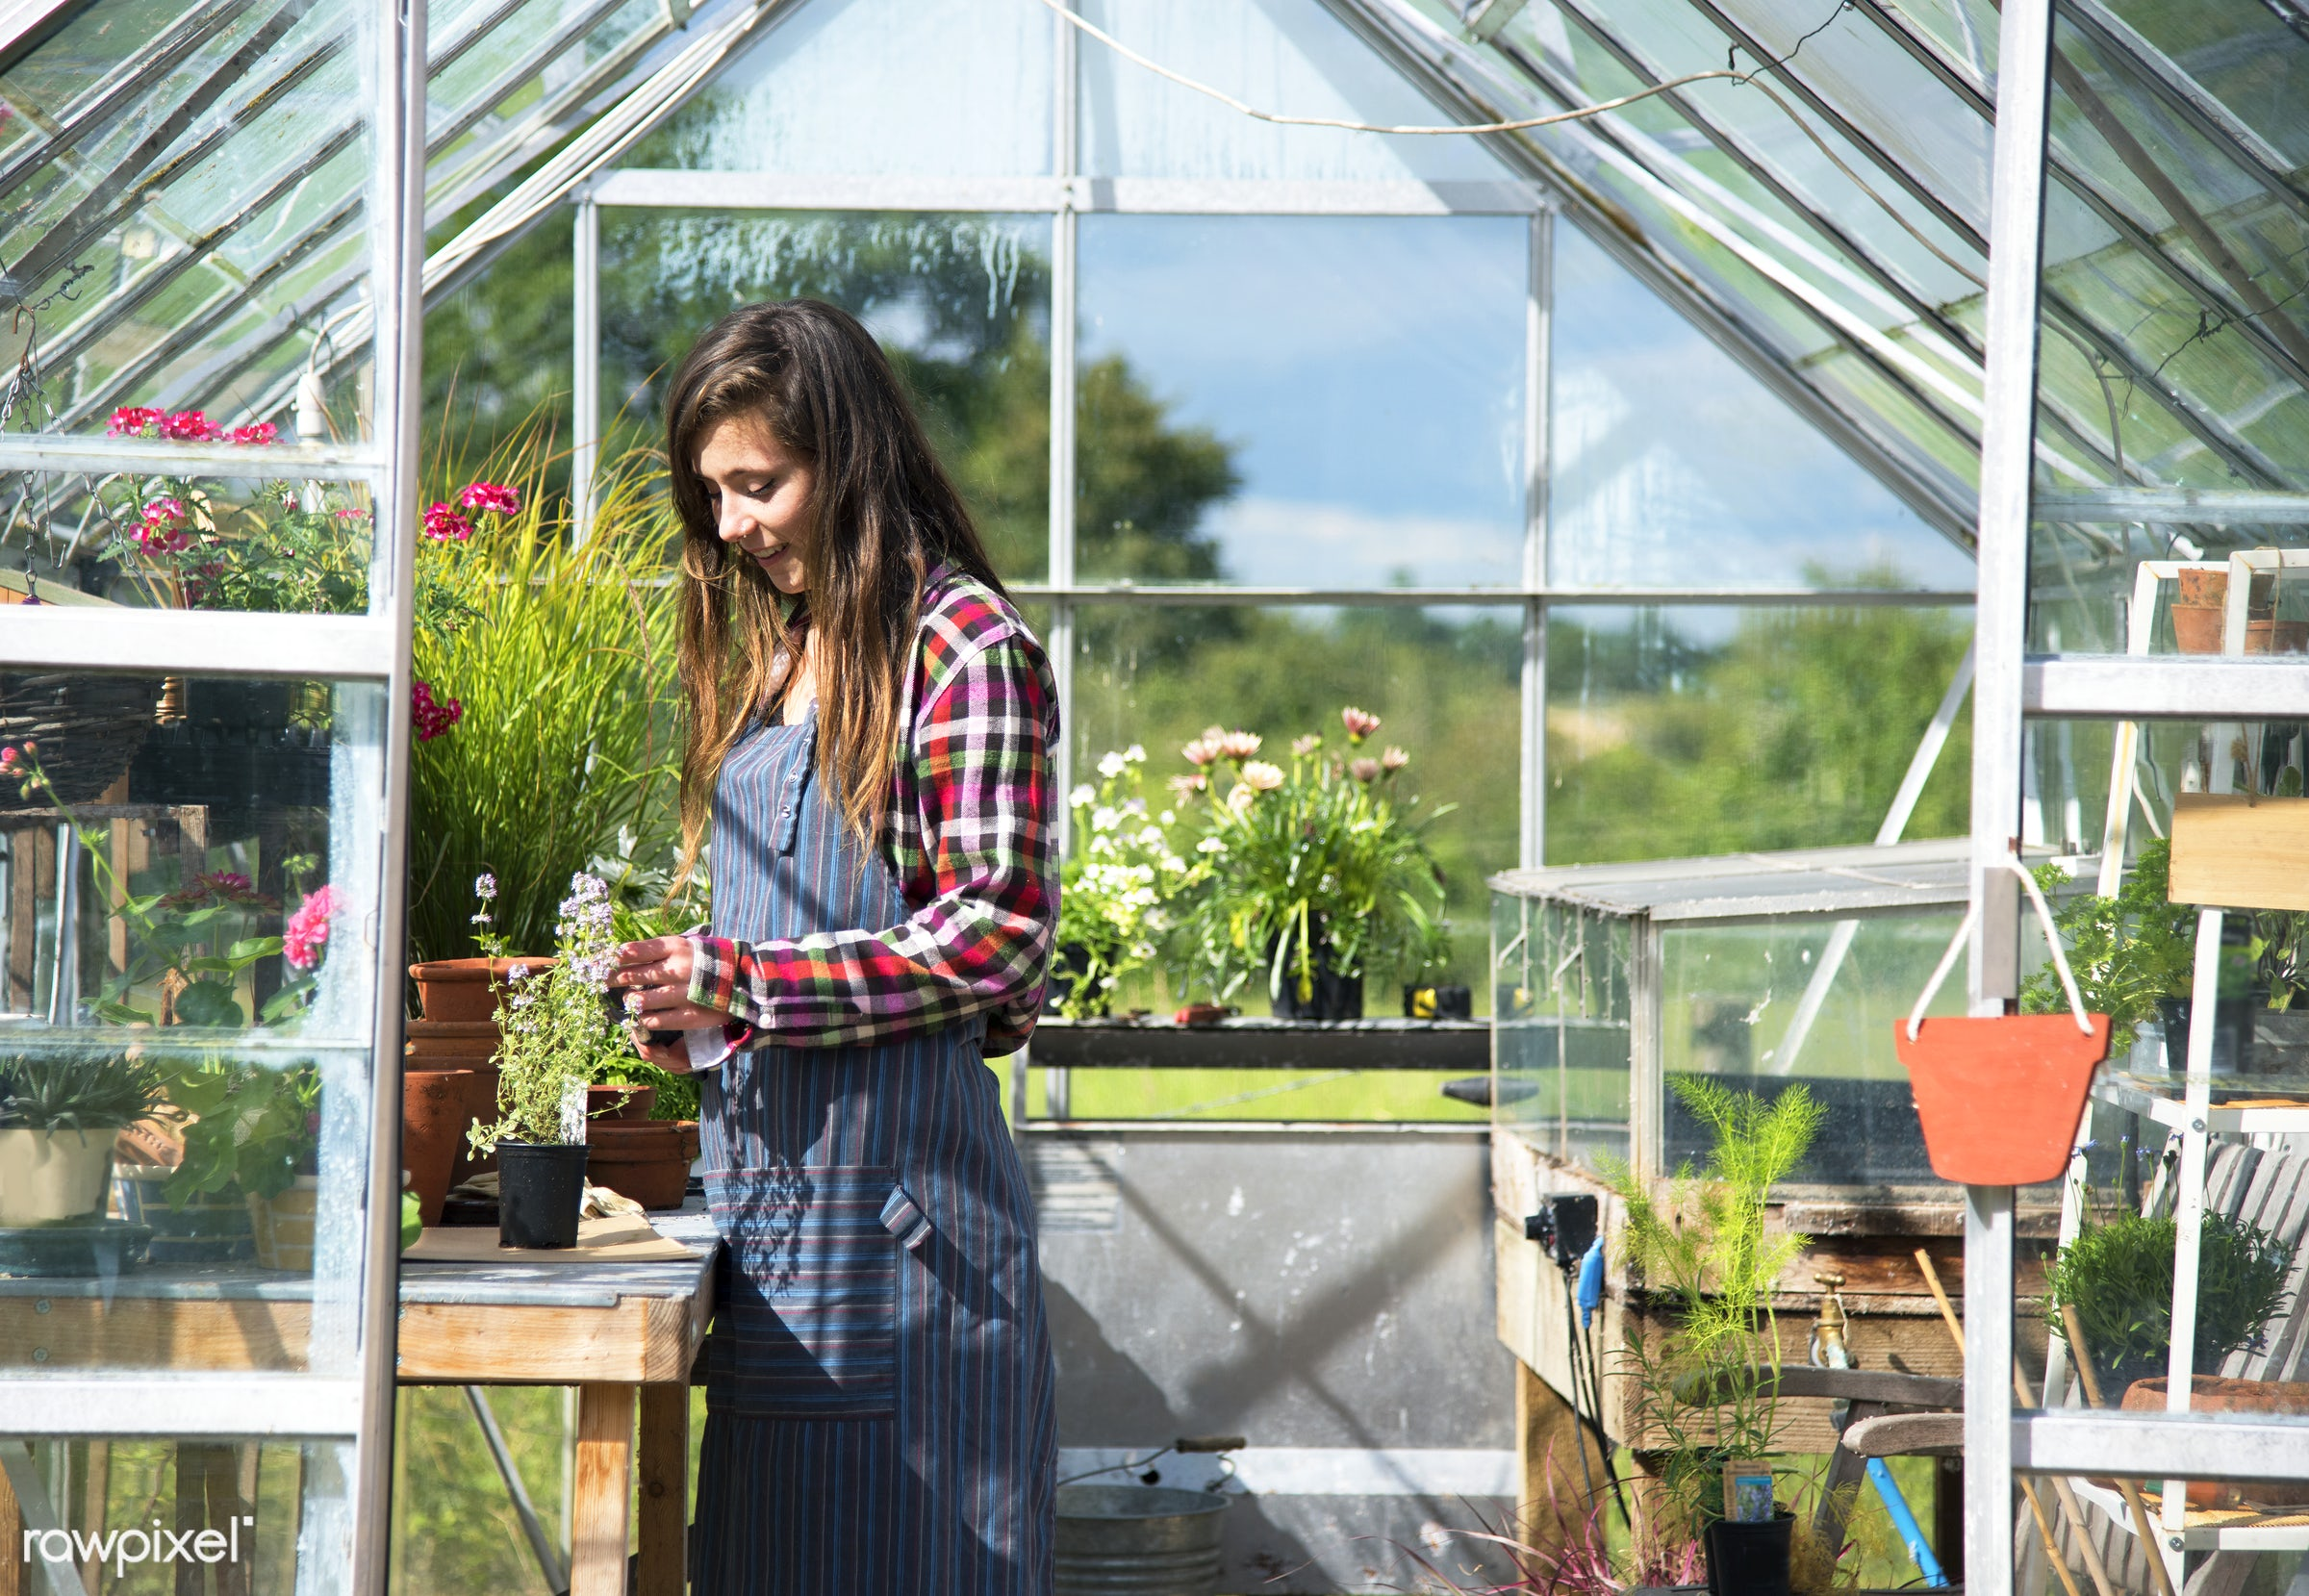 Young woman in the glass greenhouse - greenhouse, agriculture, backyard, bloom, botanical, botany, building, cares,...